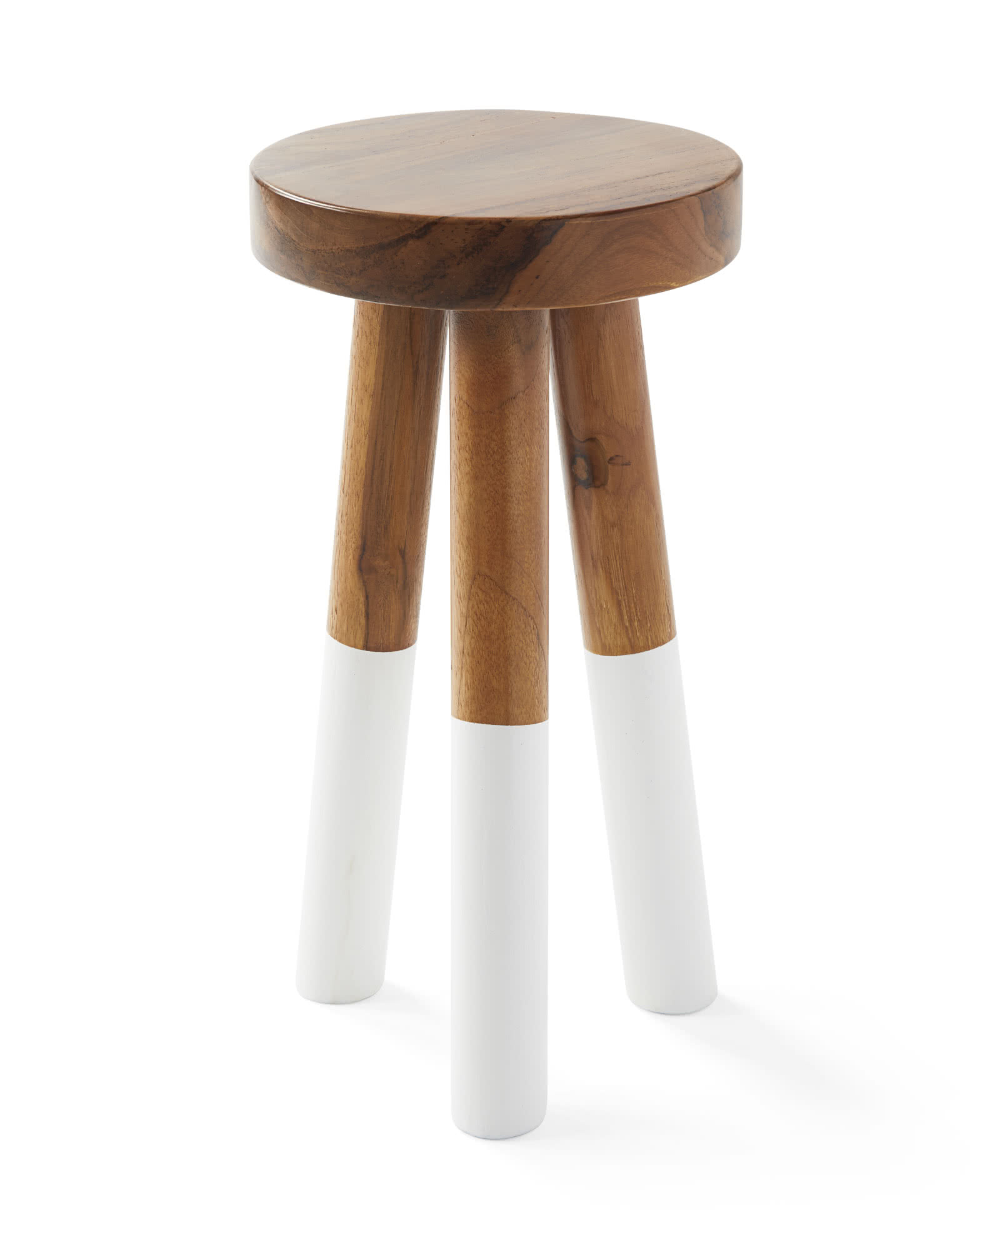 Serena Lily Dip Dyed Stools Painted Stools Glossy Paint Stool